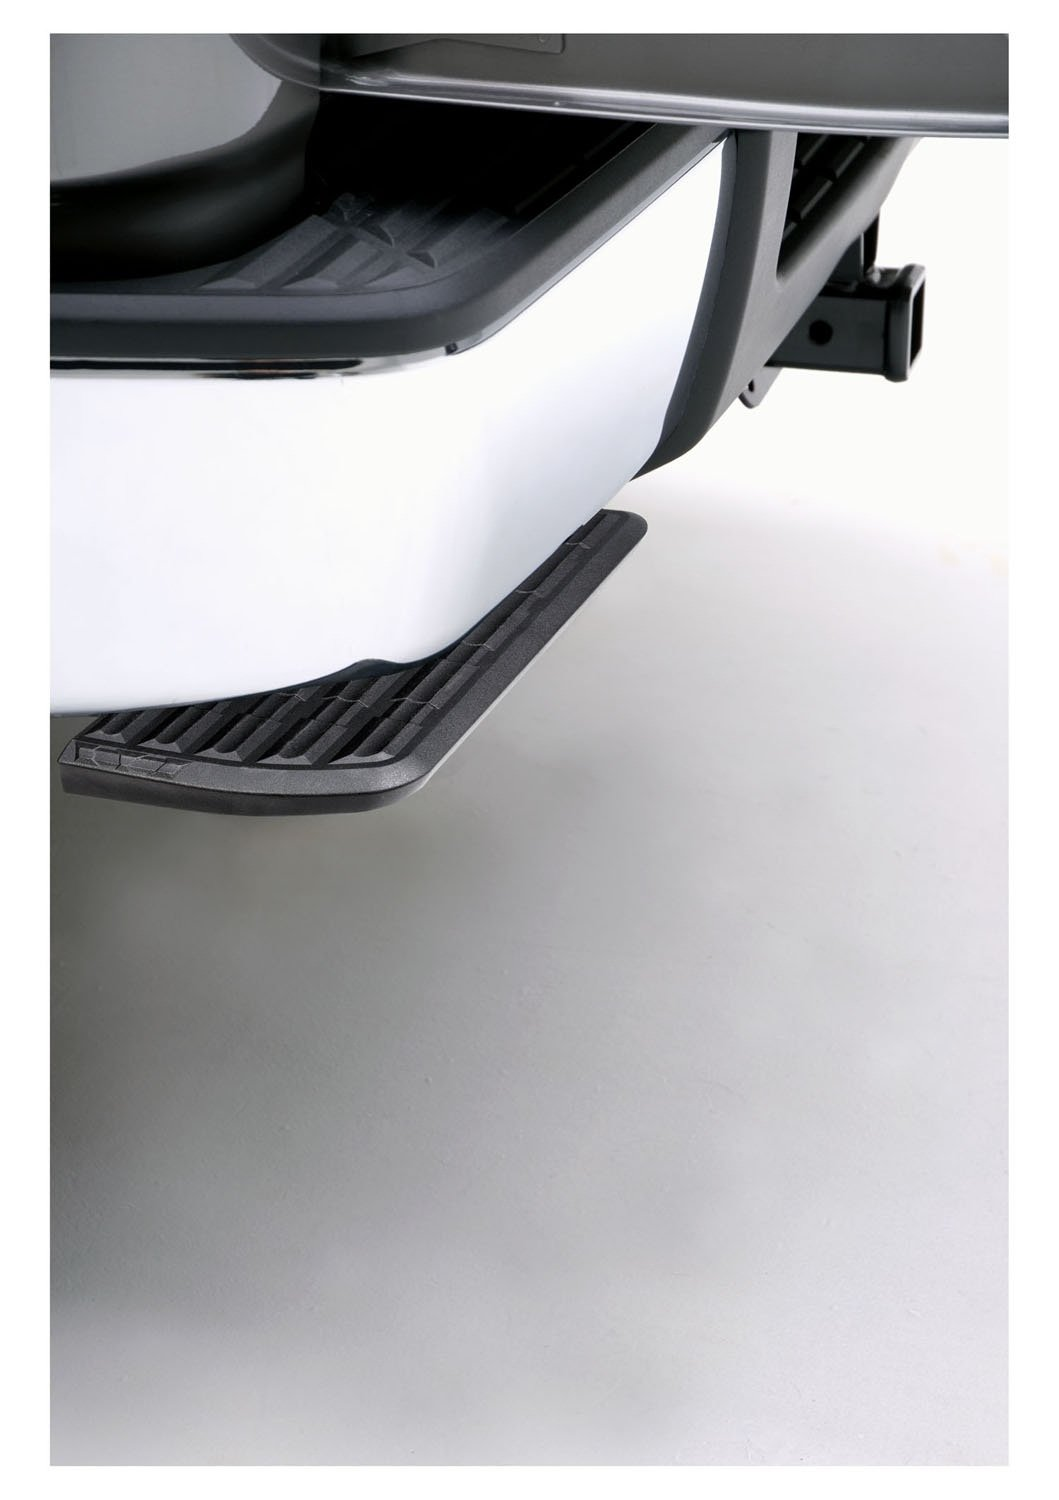 AMP Research 75300-01A BedStep Retractable Bumper Step for 2007-2013 Silverado & Sierra 1500, 2007-2010 Silverado & Sierra 2500/3500 (Excludes 2007 Classic & Flareside Models) by AMP Research